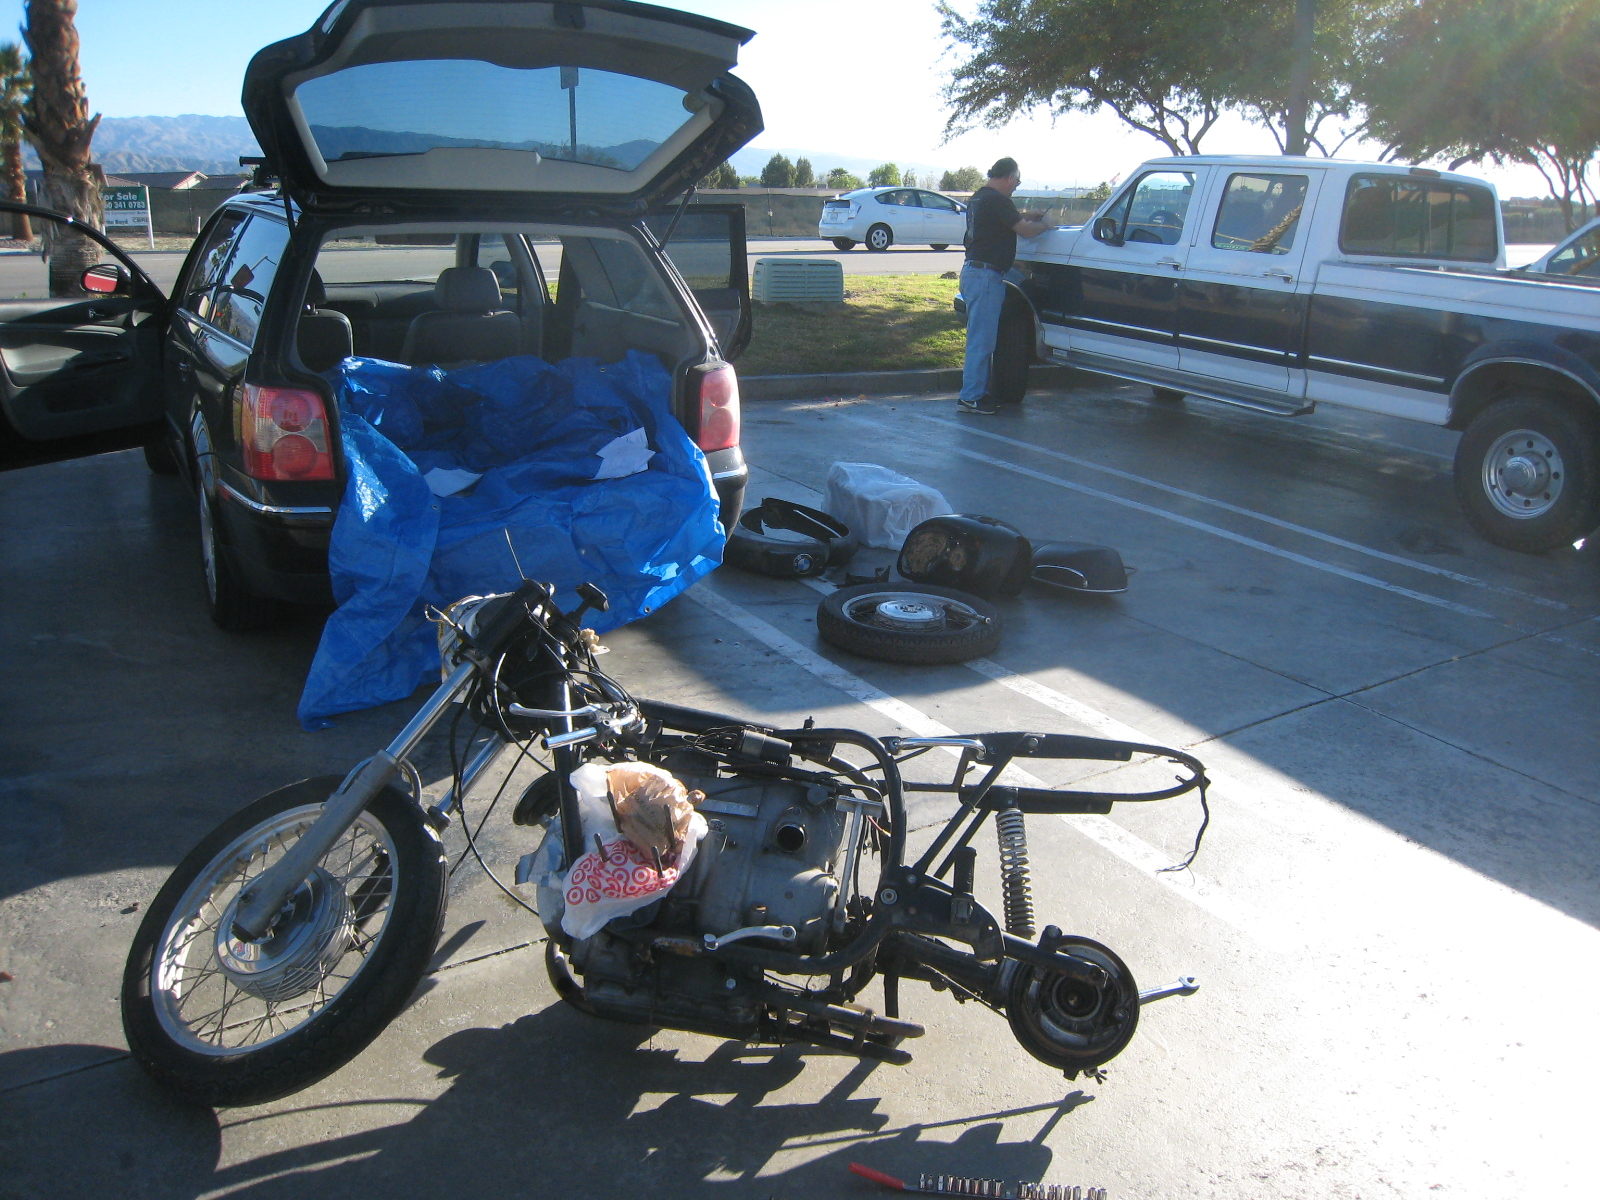 parking lot bike disassembly